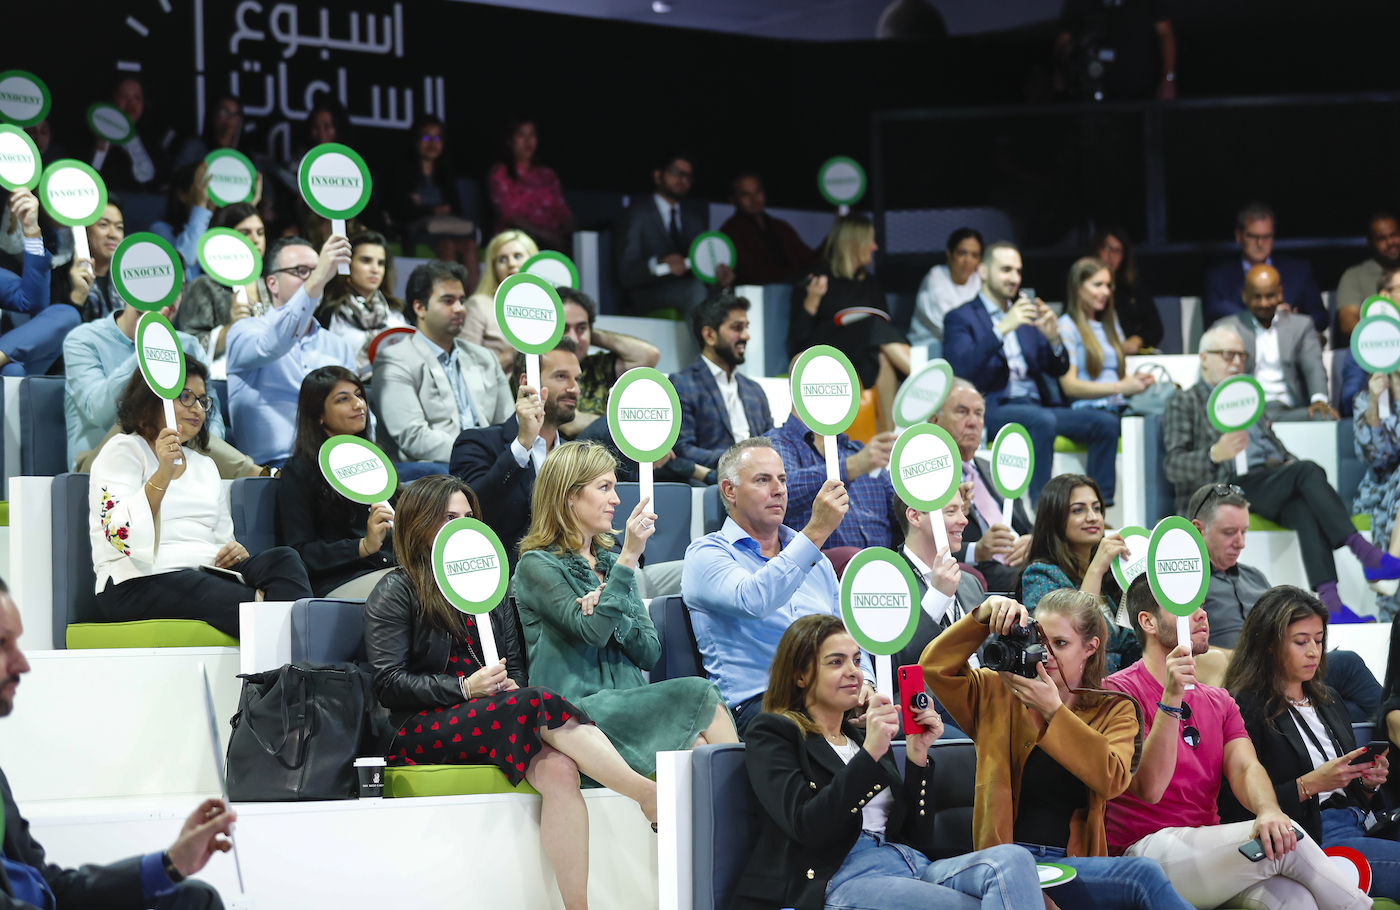 Dubai Watch Week to return in November 2021 with a physical event